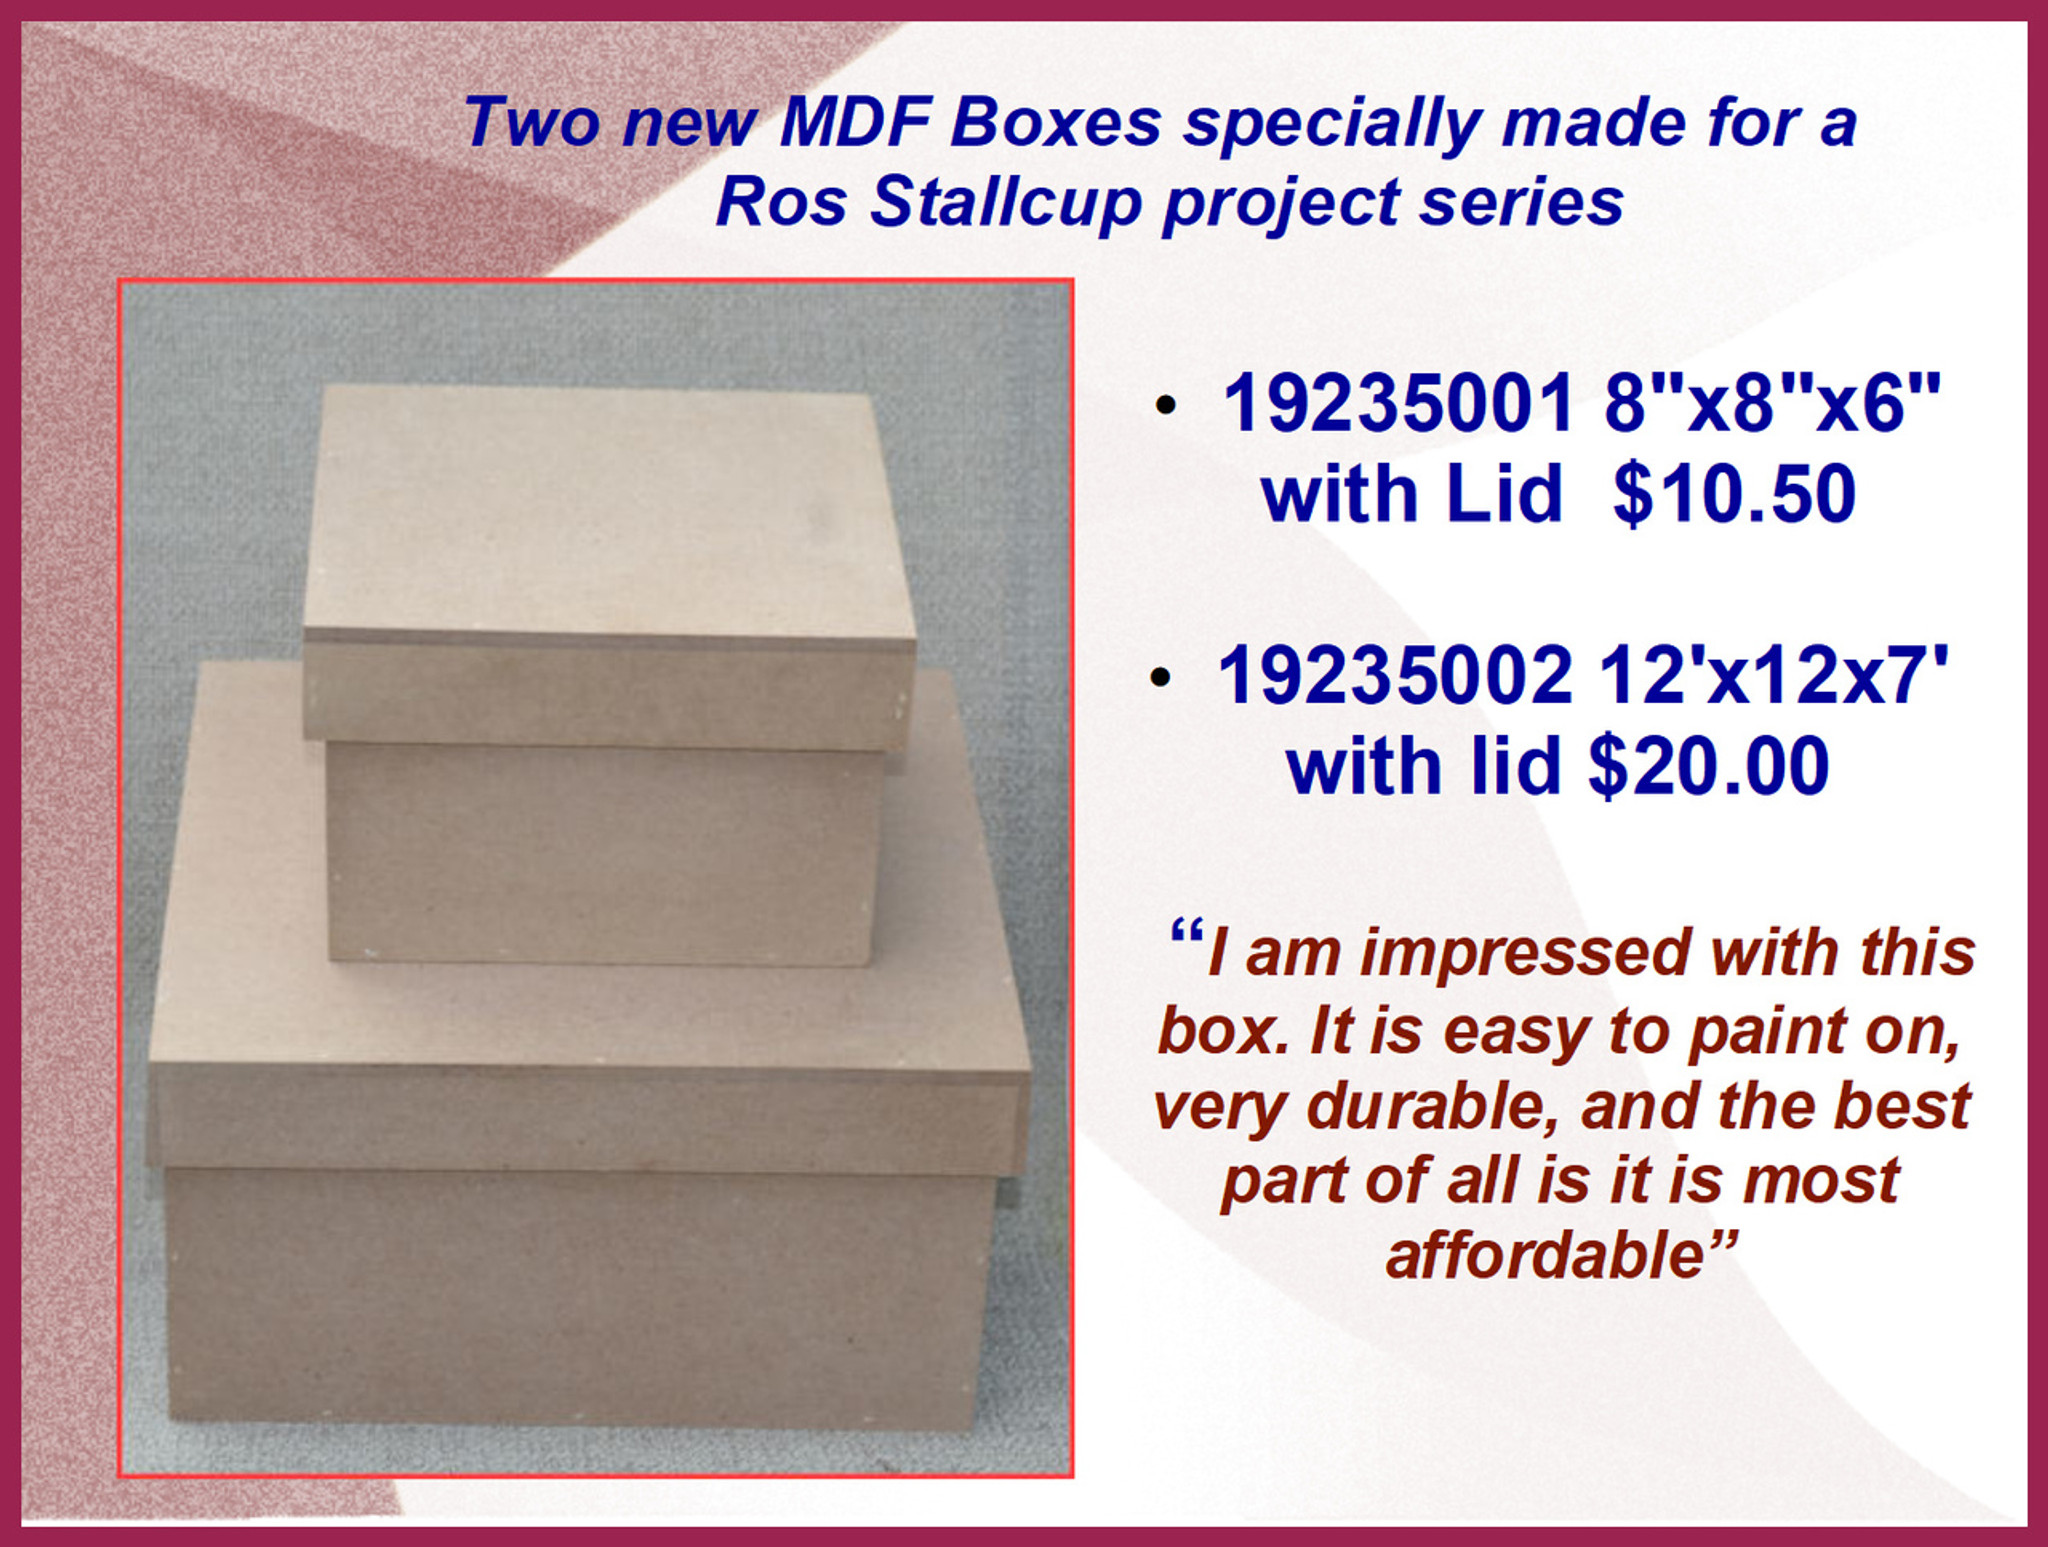 Wood - MDF Boxes with Lids (19235001, 19235002) List Price $12 00, $22 00)